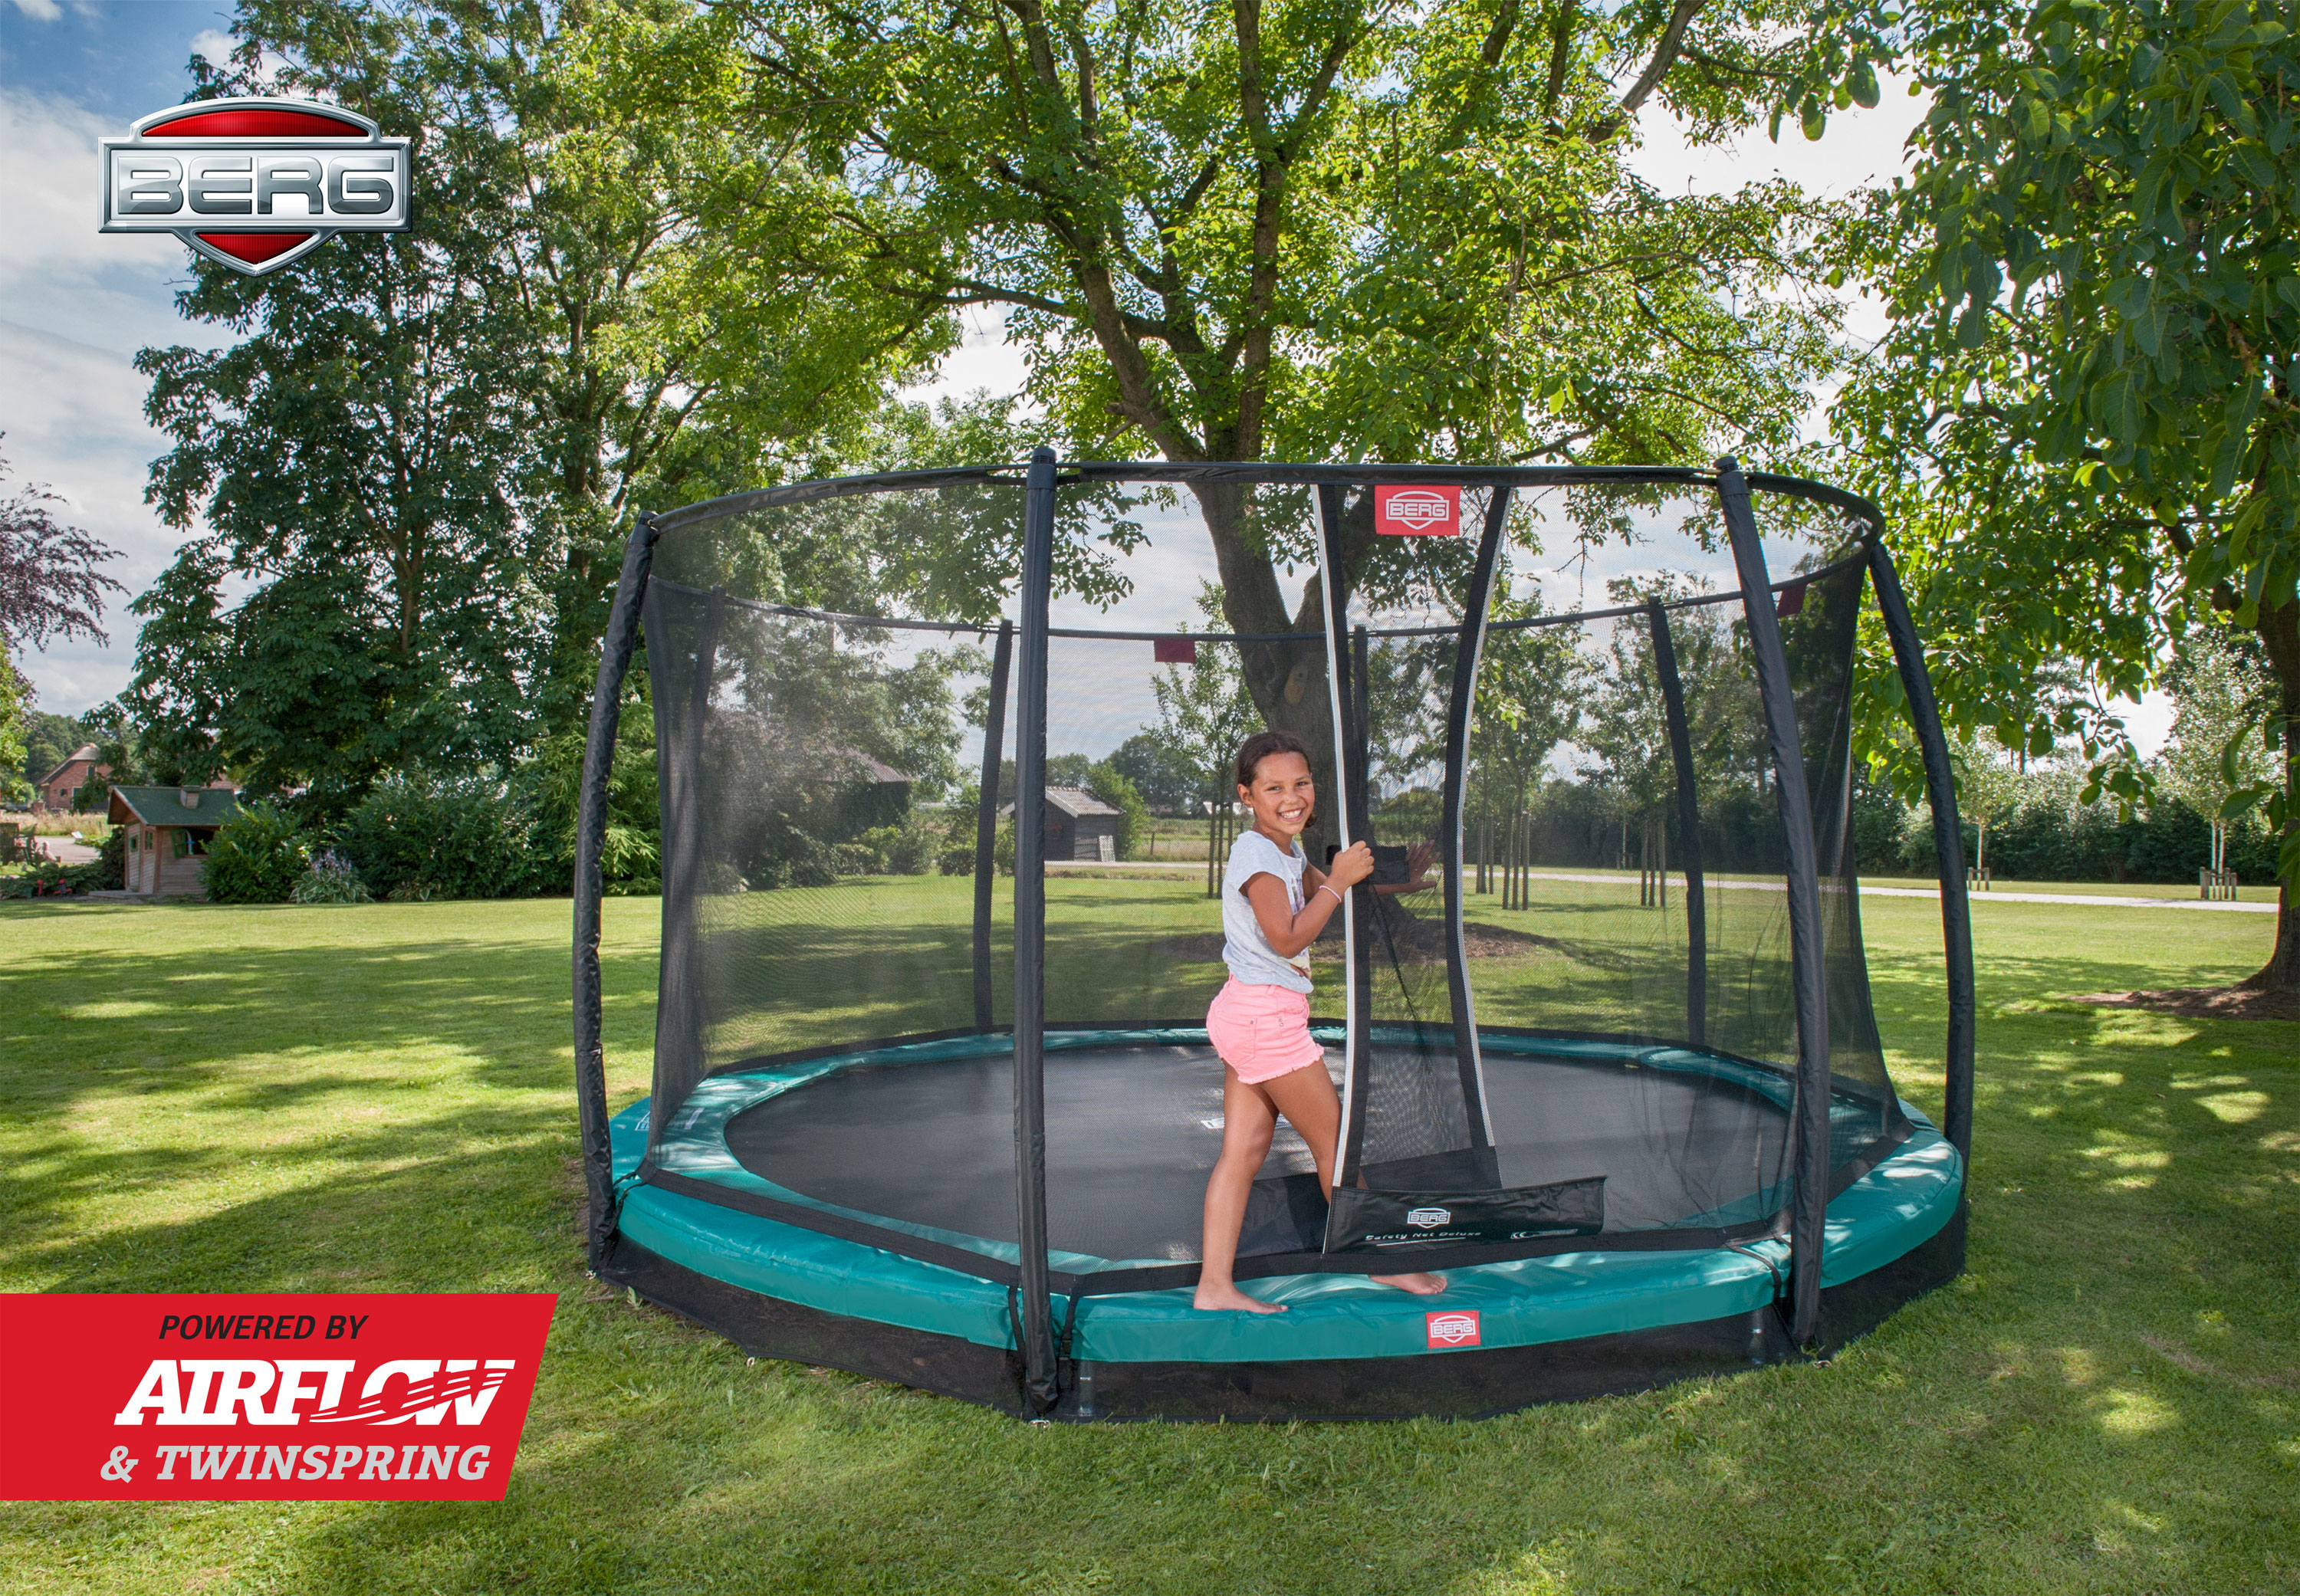 Trampolin InGround Champion grün + Netz Deluxe Ø270cm BERG toys Bild 4